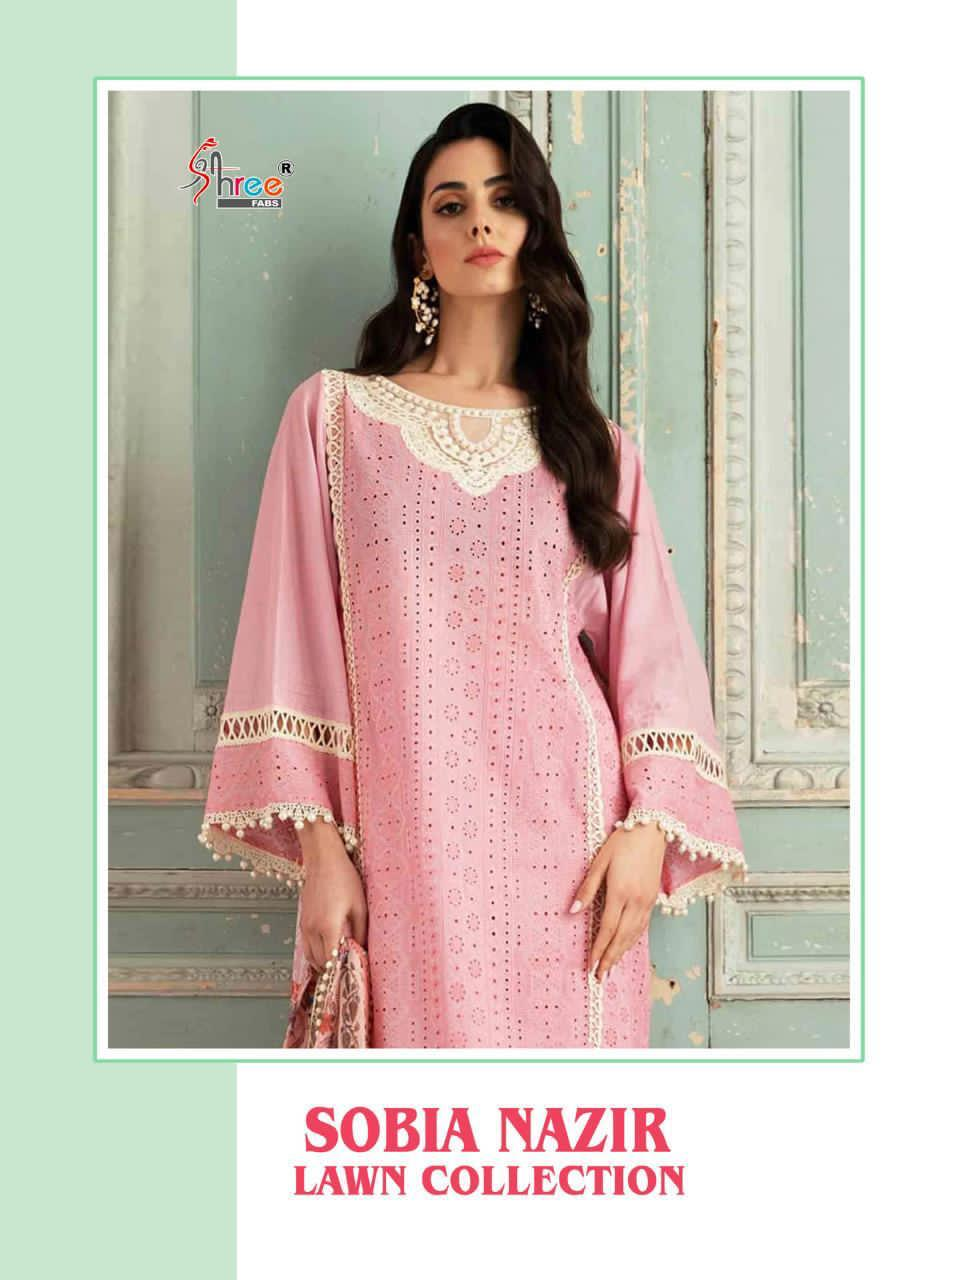 Shree Fabs Sobia Nazir Lawn Collection Salwar Suit Wholesale Catalog 5 Pcs 1 - Shree Fabs Sobia Nazir Lawn Collection Salwar Suit Wholesale Catalog 5 Pcs